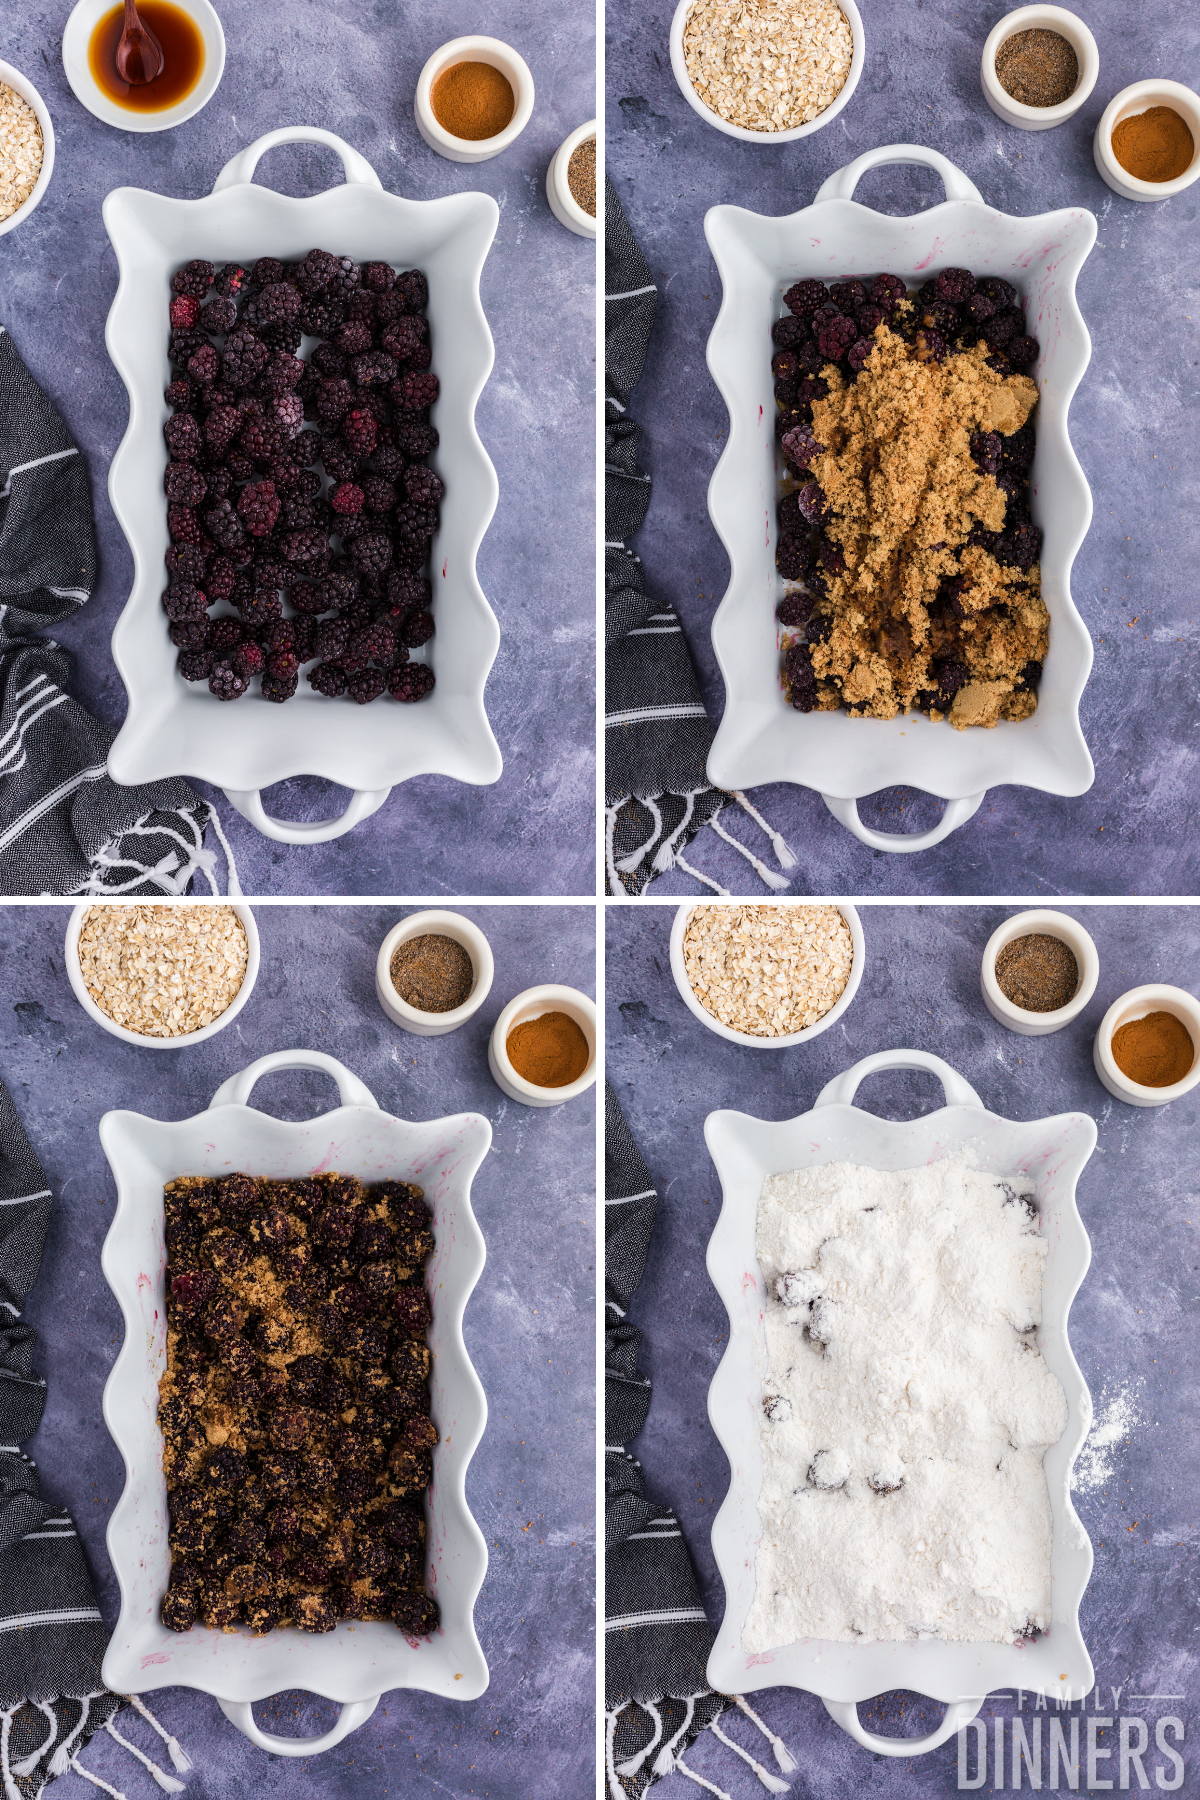 collage of 4 images. Top left is white scalloped casserole dish with blackberries in bottom. Top right is same dish with blackberries and brown sugar. Bottom left is blackberries, brown sugar and spices mixed up. Bottom right is same dish with cake mix on top.